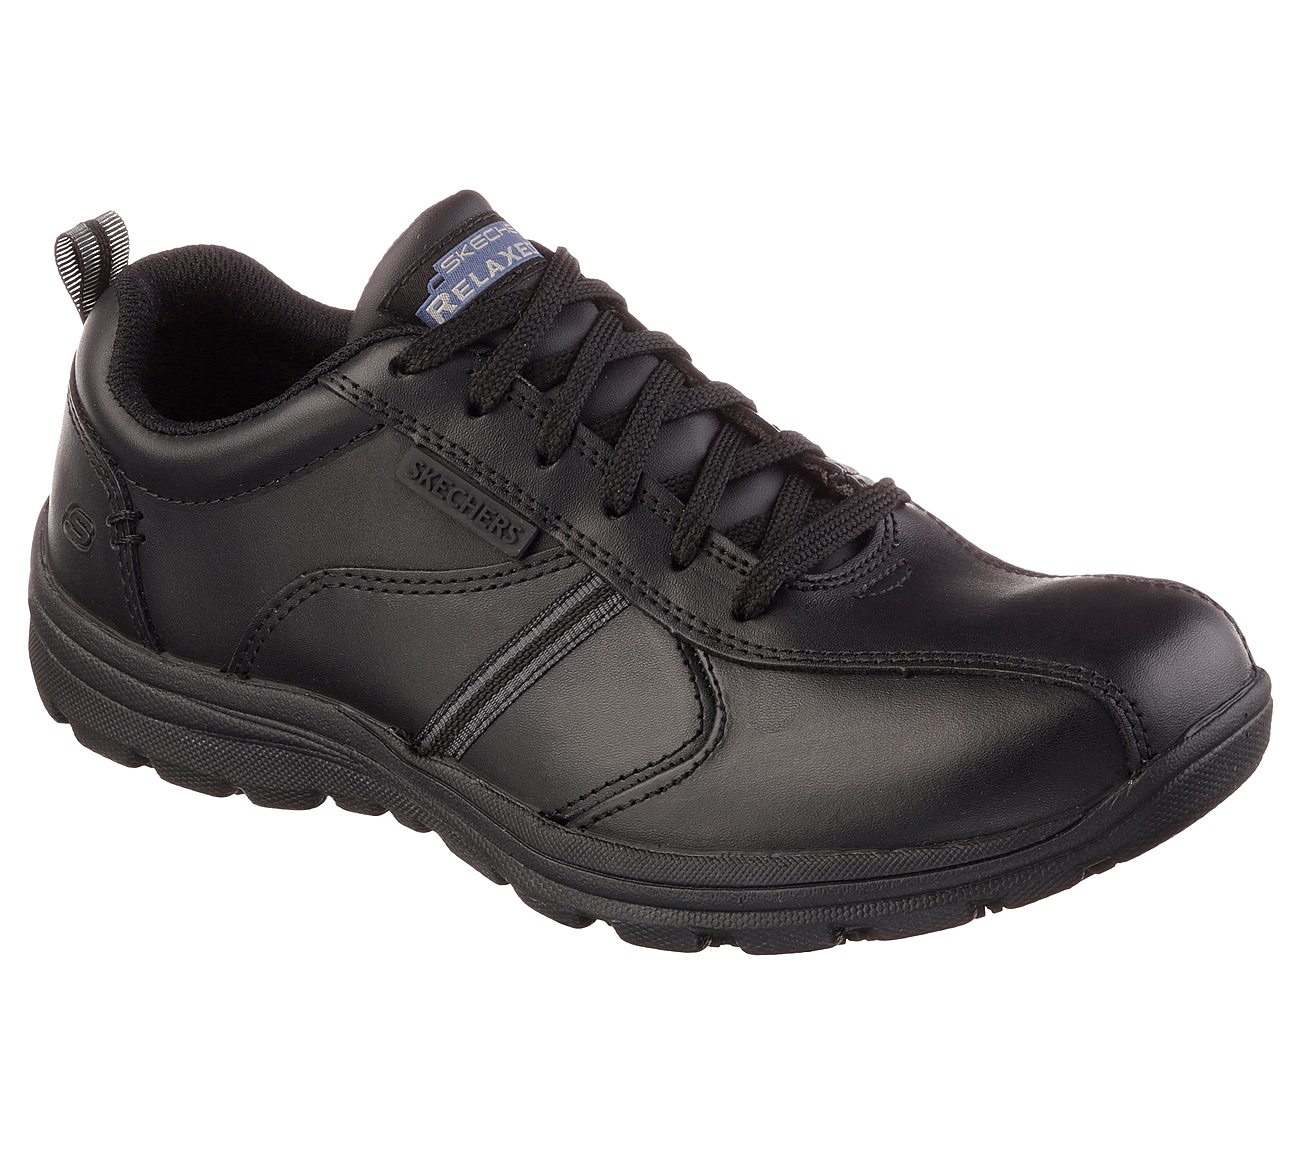 A bordo Sinis estimular  Buy SKECHERS Work Relaxed Fit: Hobbes - Frat SR Work Shoes